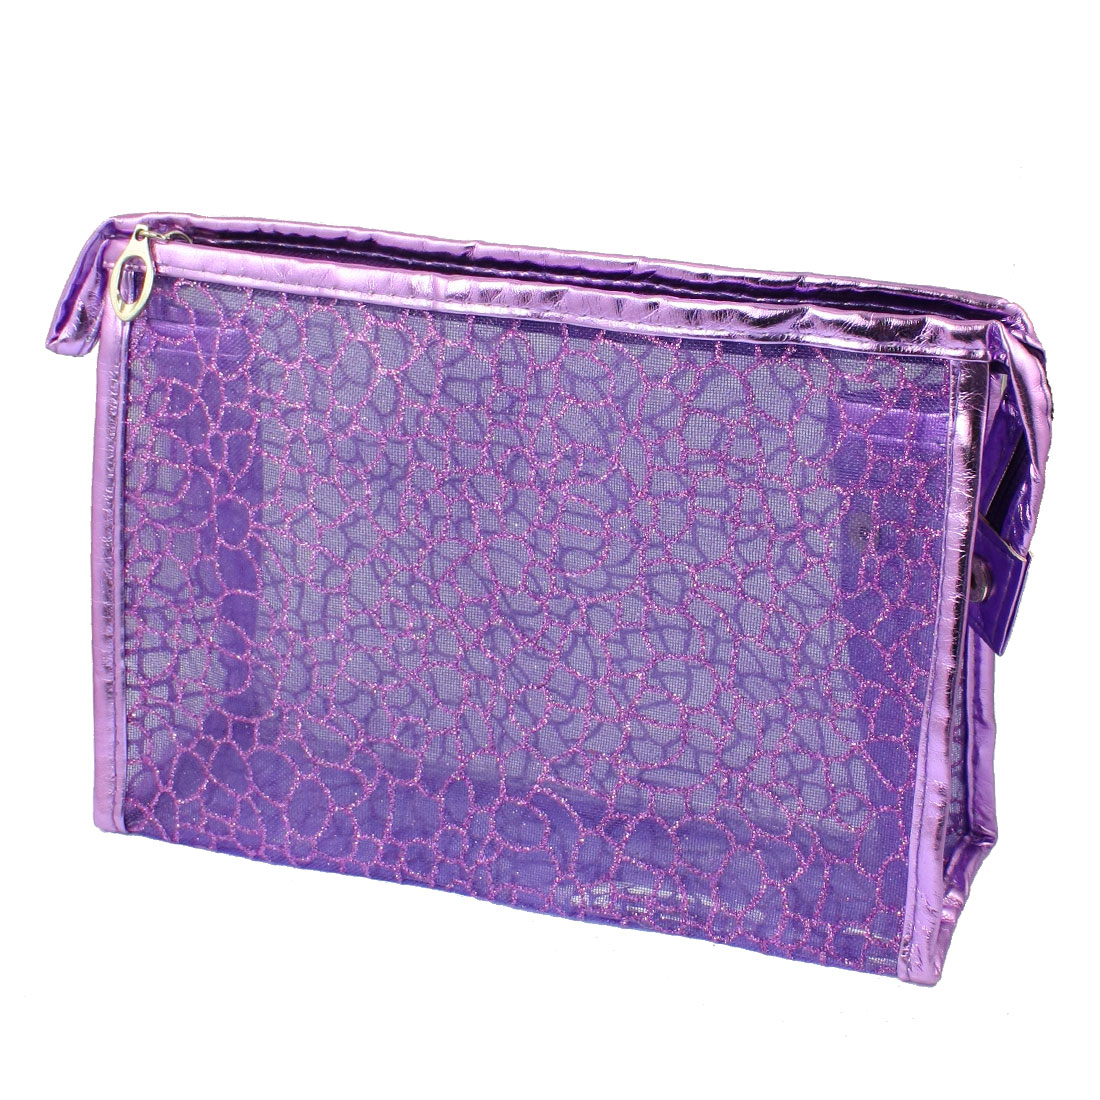 Purple PU Plastic Glittery Mesh Zipper Makeup Cosmetic Bag for Lady Girls